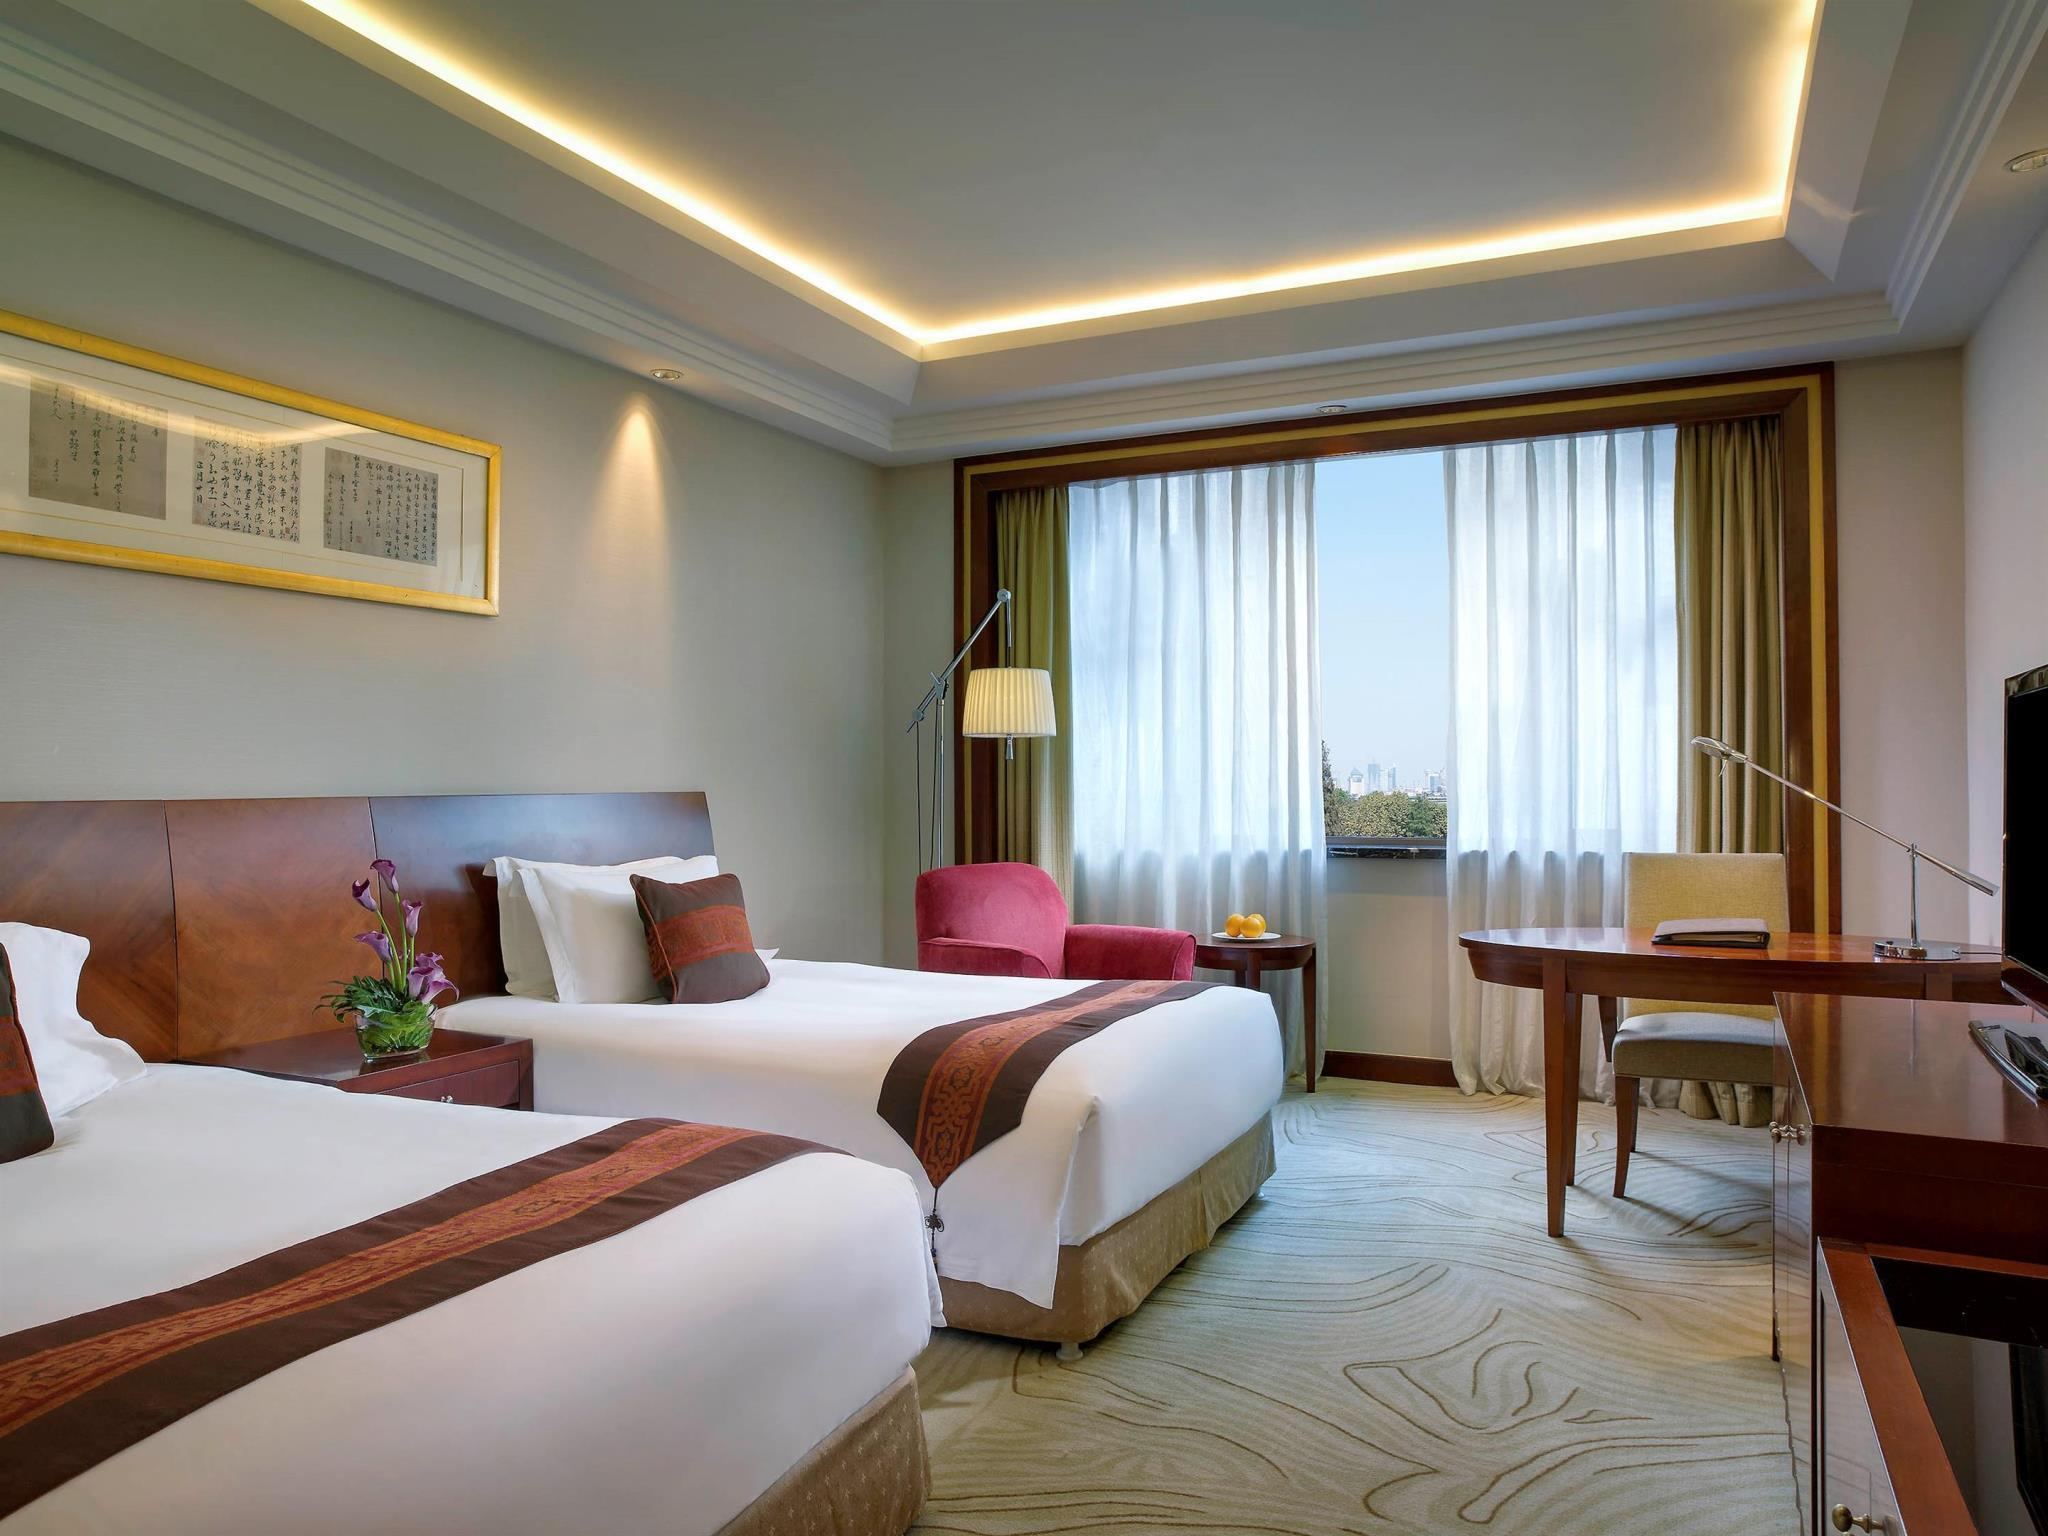 Superior 2 Ranjang Single dengan Pemandangan Kota (Superior 2 Single Beds City View)